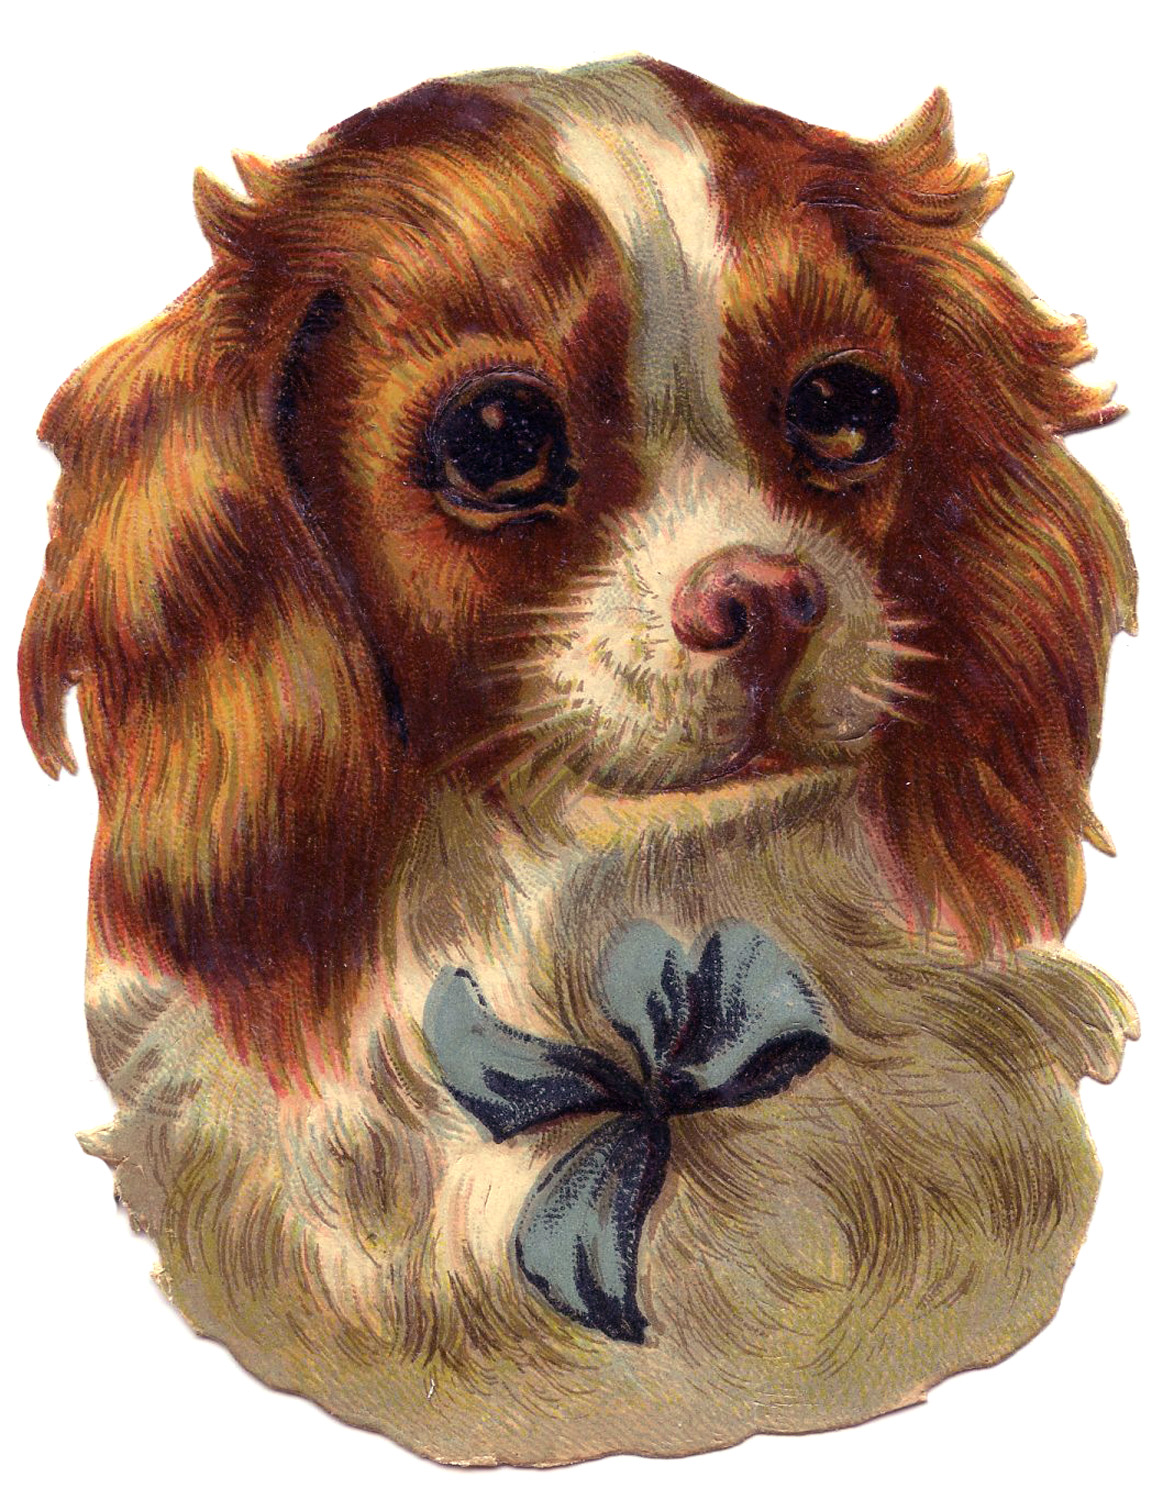 http://thegraphicsfairy.com/wp-content/uploads/2013/02/Vintage-Images-Dog-Spaniel-GraphicsFairy1.jpg